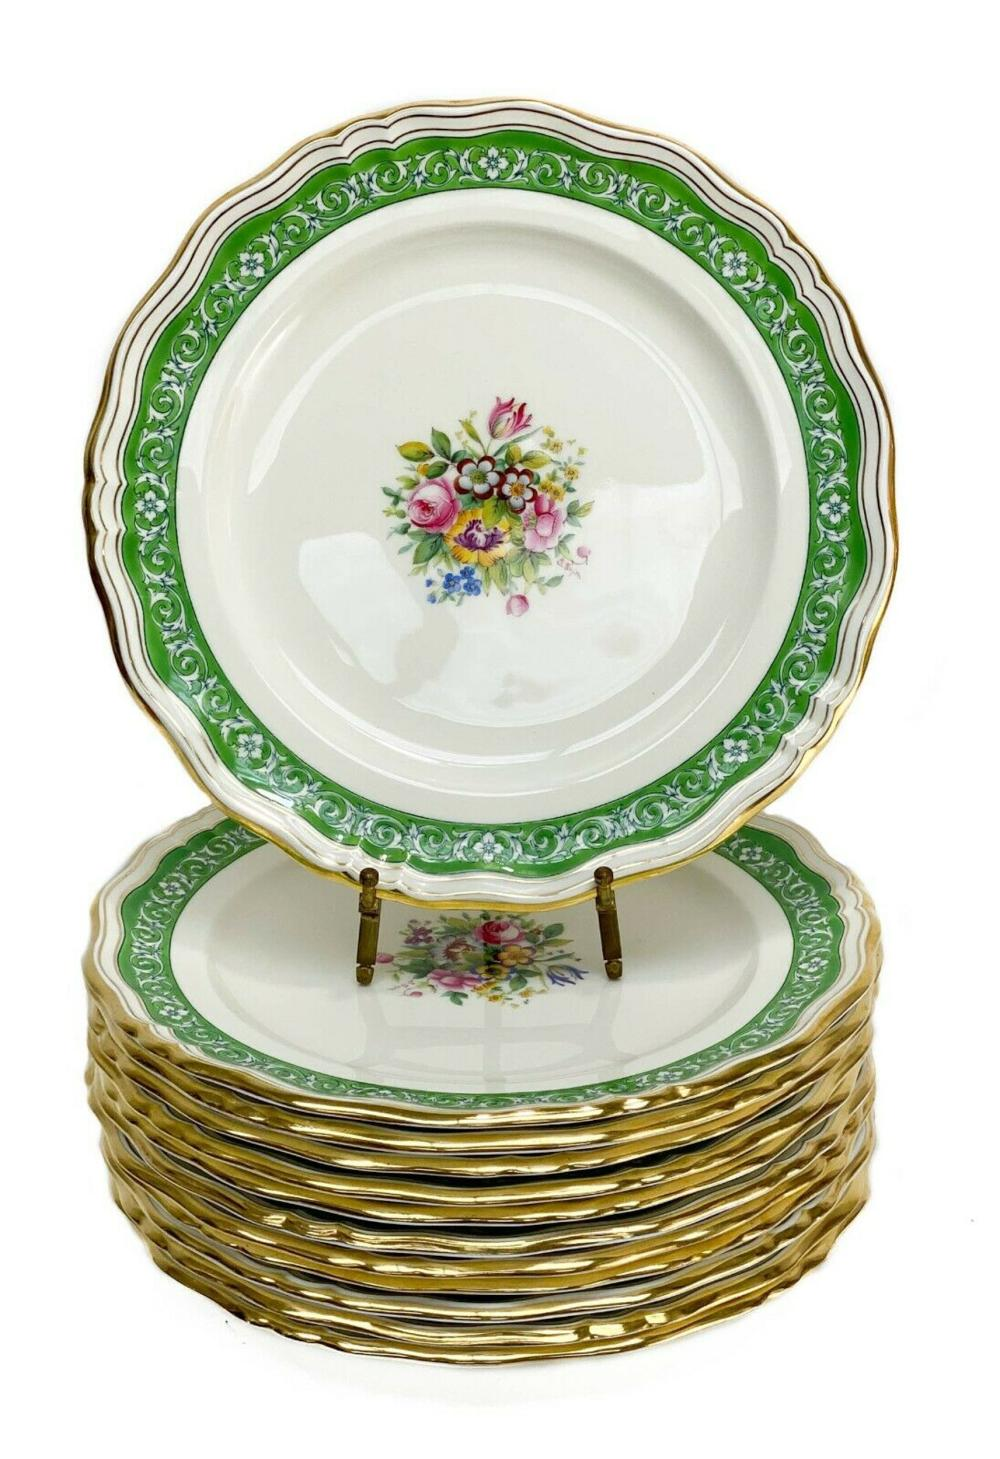 12 Minton England for Tiffany & Co. Dinner Plates Signed c.1920